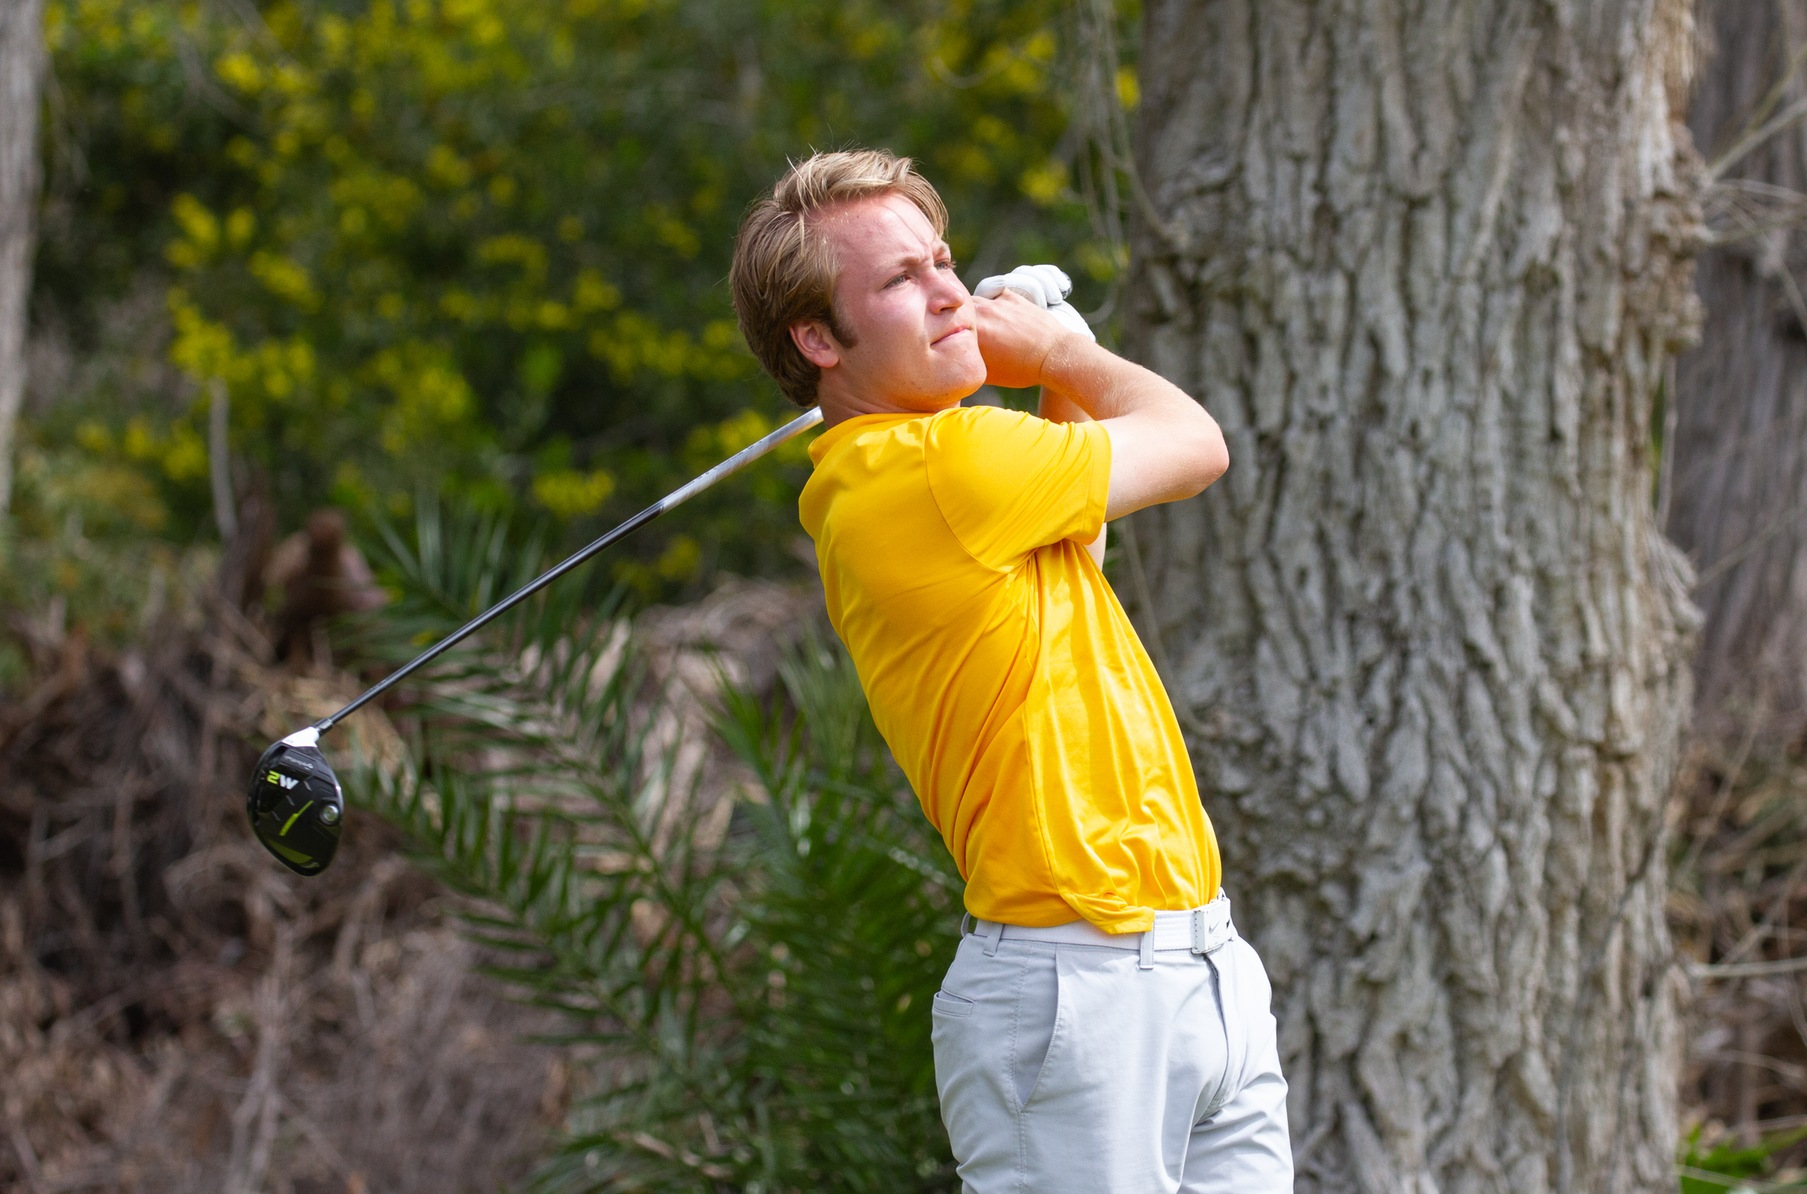 Drew Christofferson competes at the UCSD SoCal Intercollegiate.